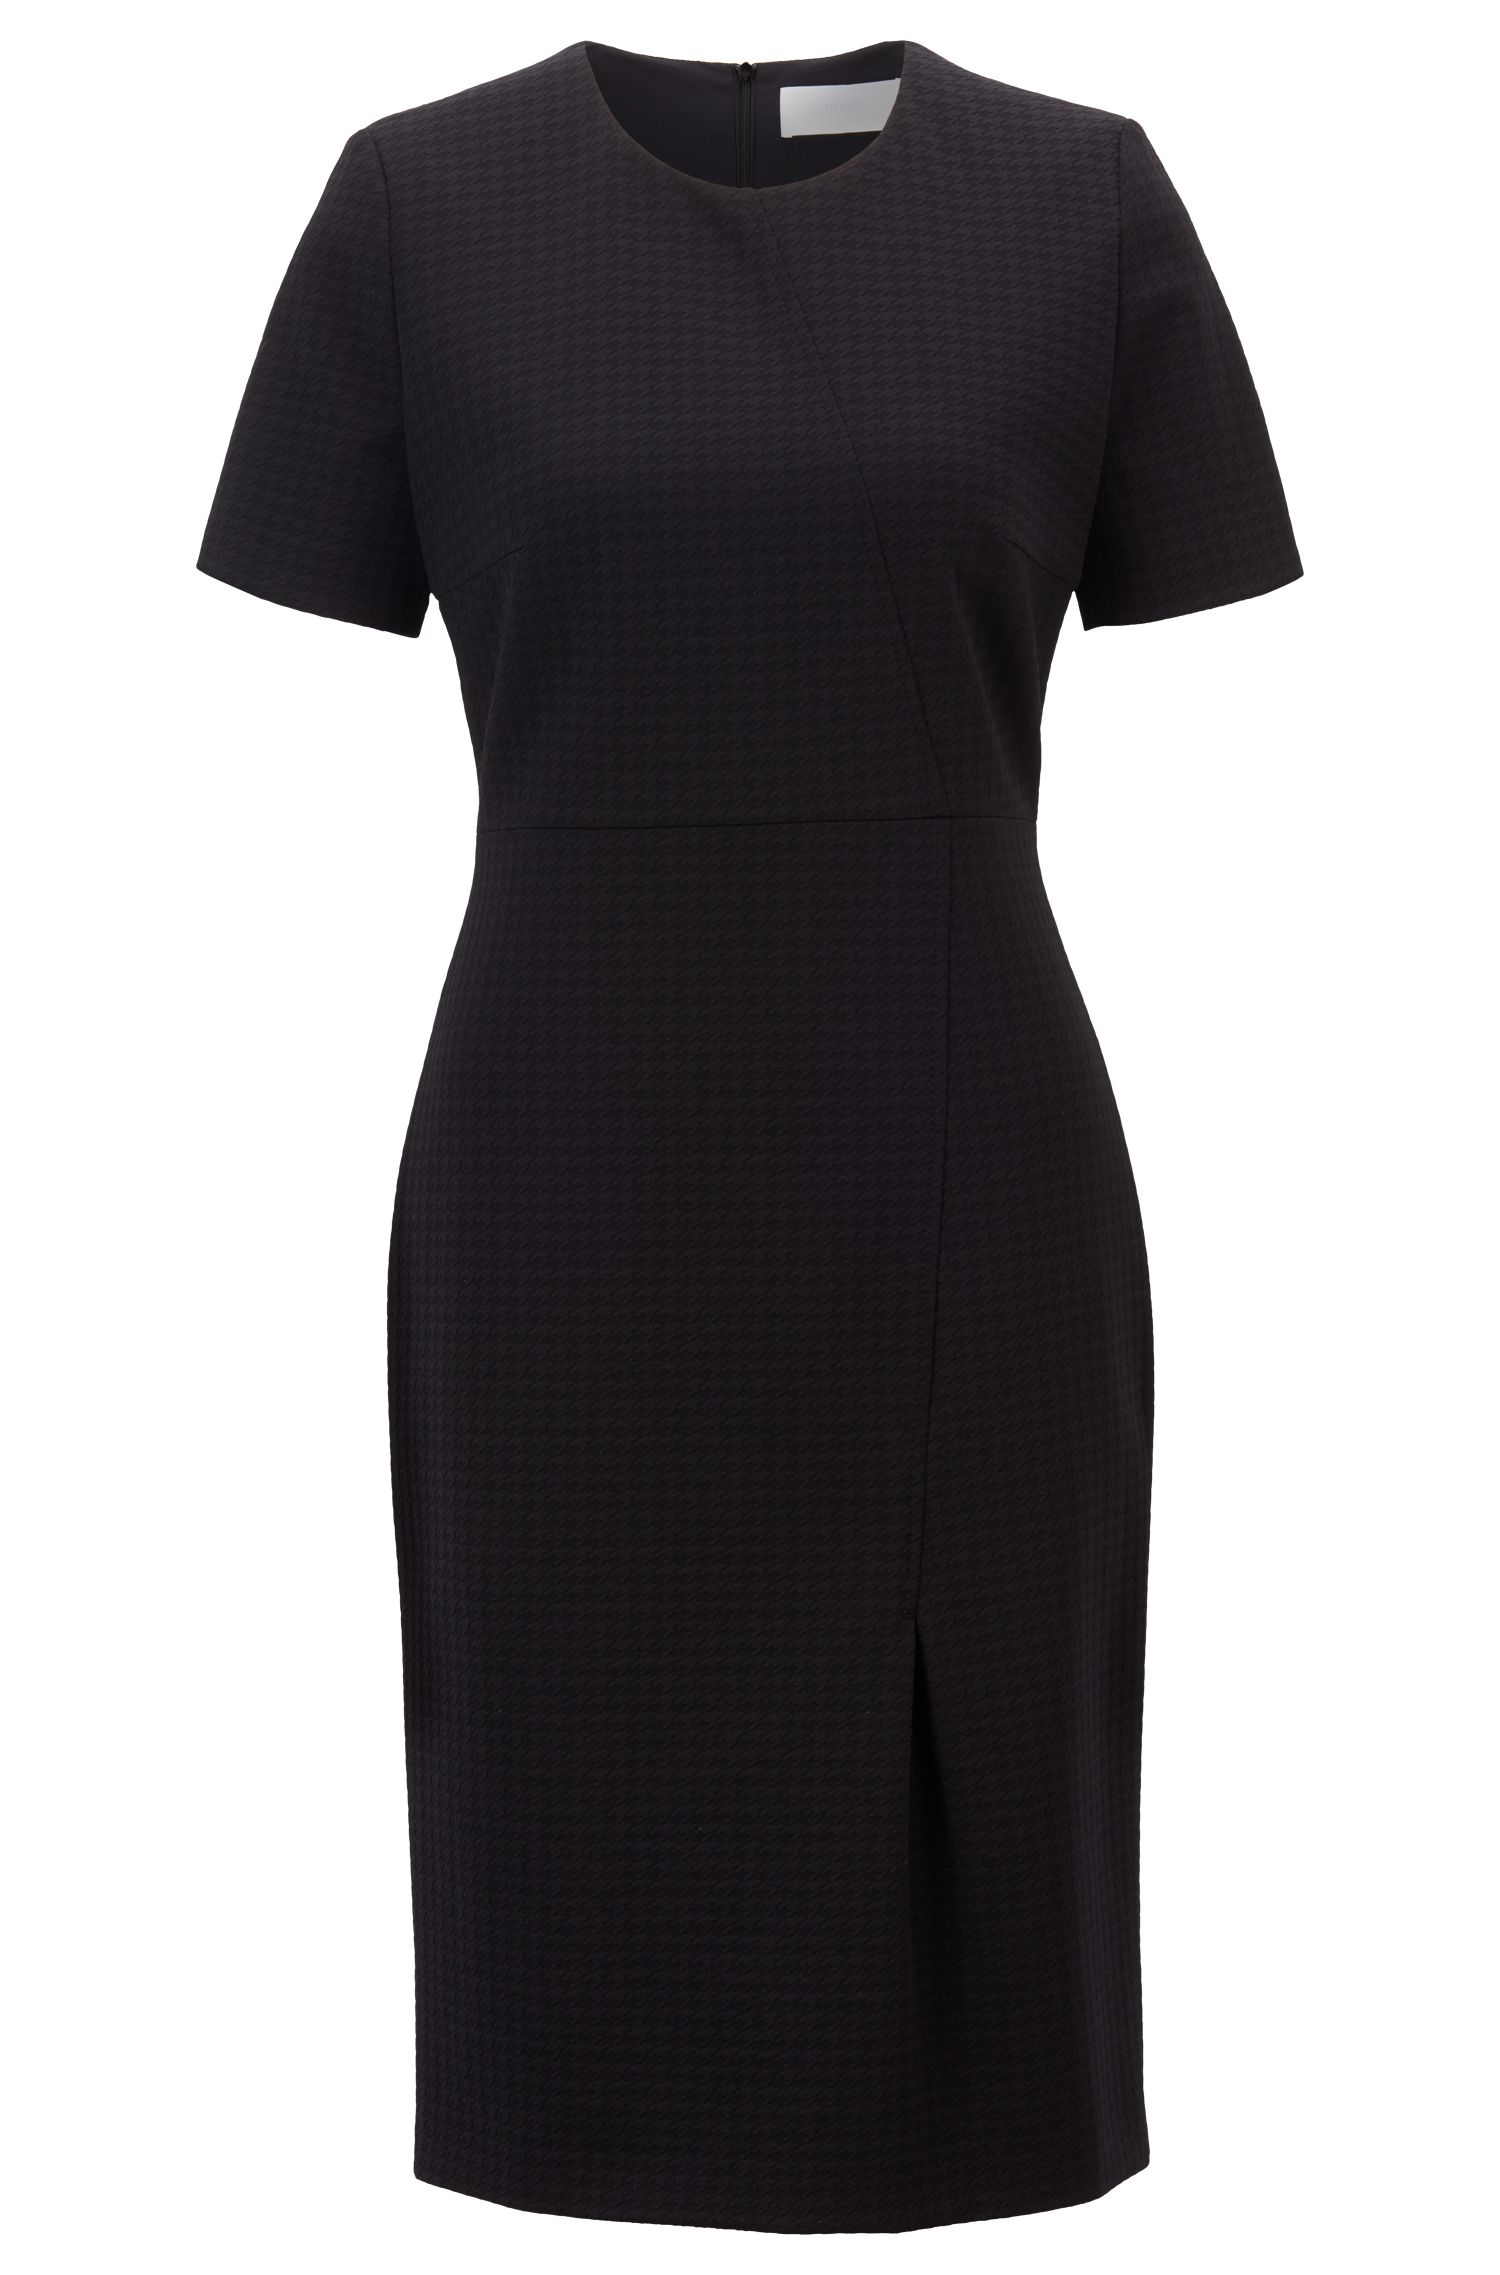 Short-sleeved dress in Italian houndstooth jersey, Black